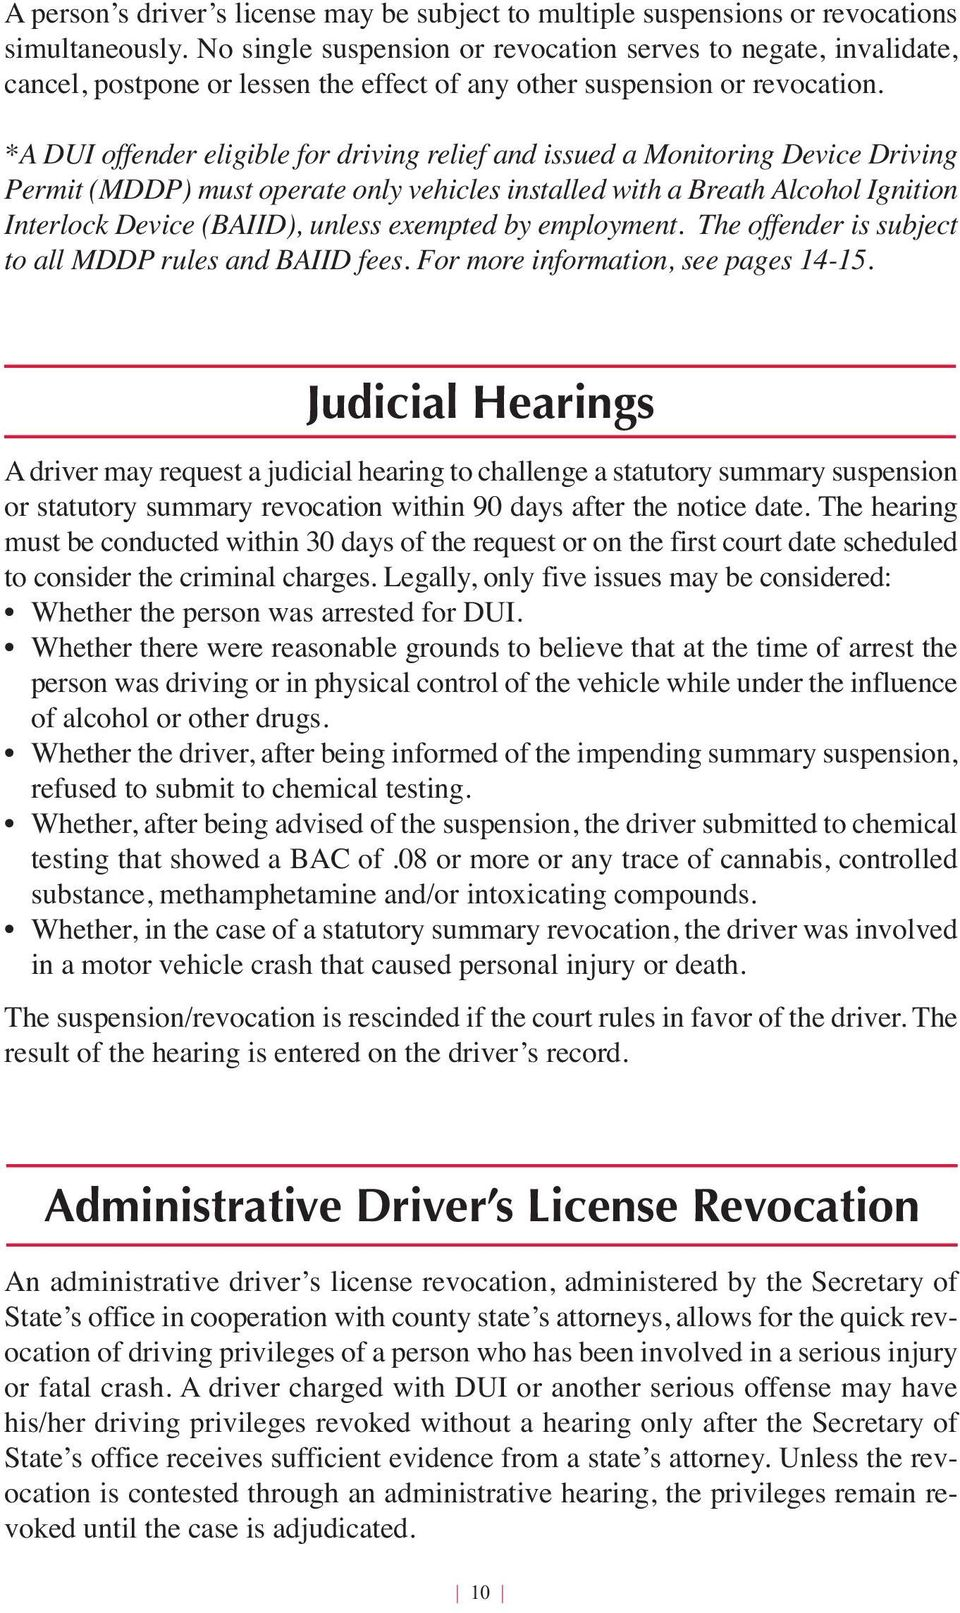 *A DUI offender eligible for driving relief and issued a Monitoring Device Driving Permit (MDDP) must operate only vehicles installed with a Breath Alcohol Ignition Interlock Device (BAIID), unless